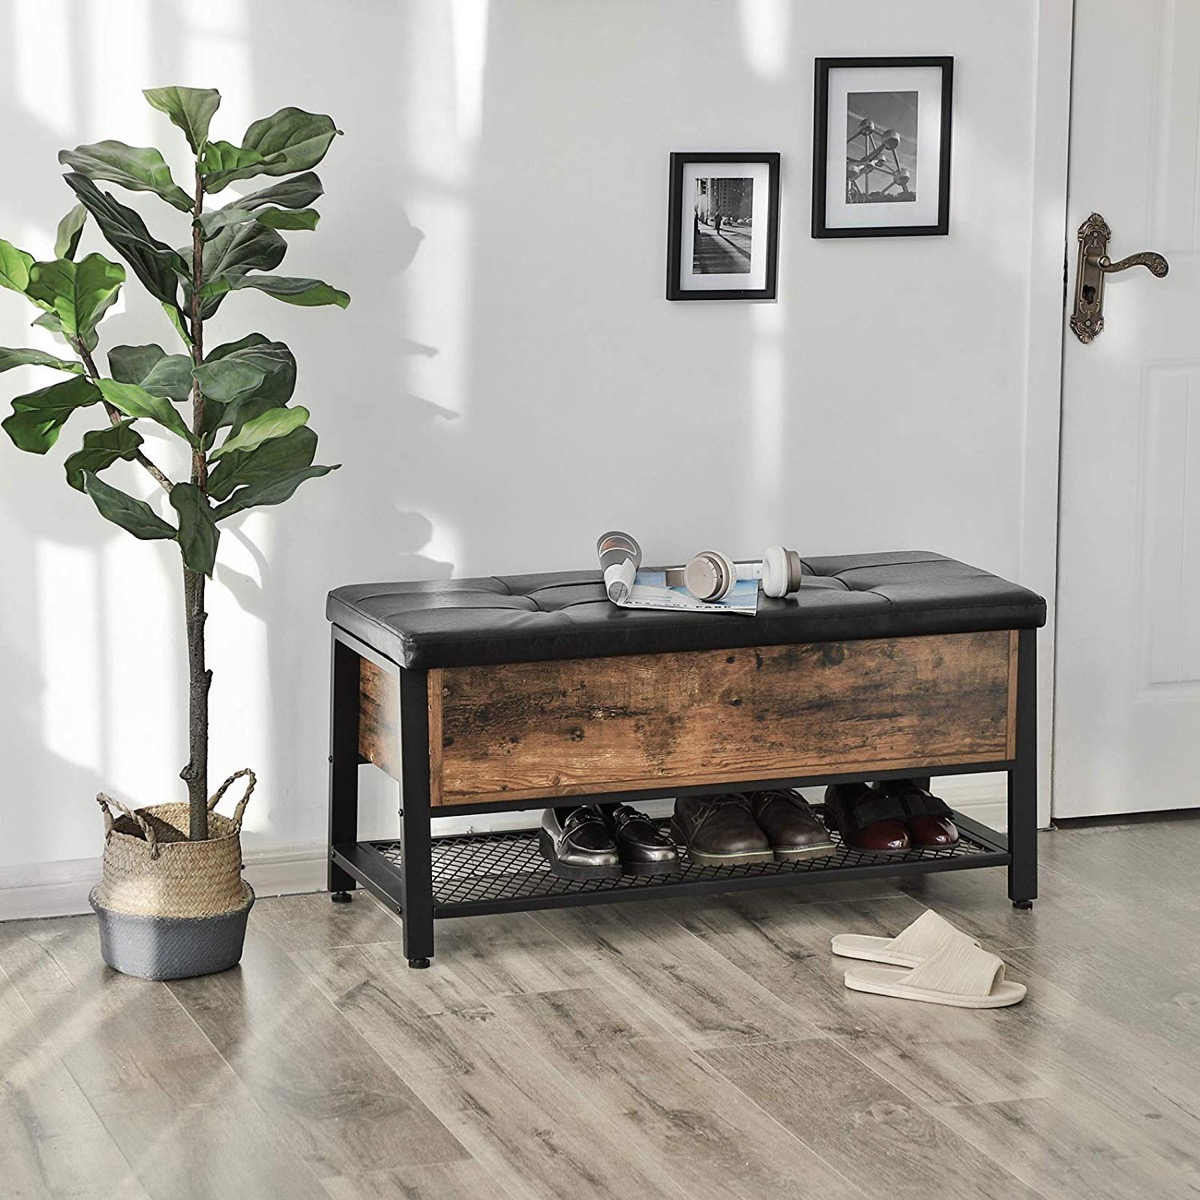 Tremendous 51 Entryway Benches For A Warm And Welcoming First Impression Pabps2019 Chair Design Images Pabps2019Com